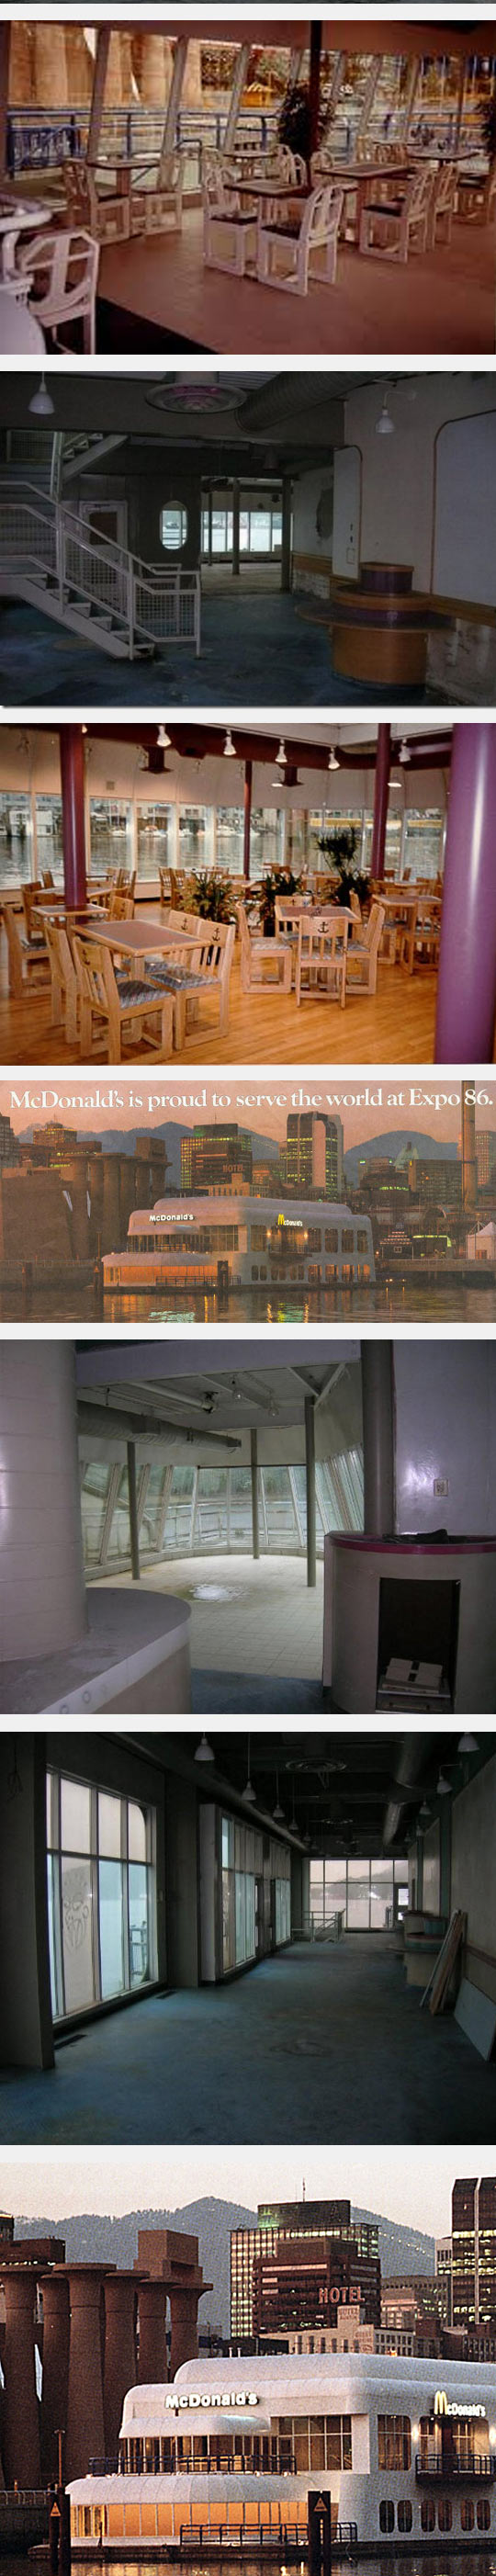 funny-boat-restaurant-McDonalds-abandoned-Vancouver